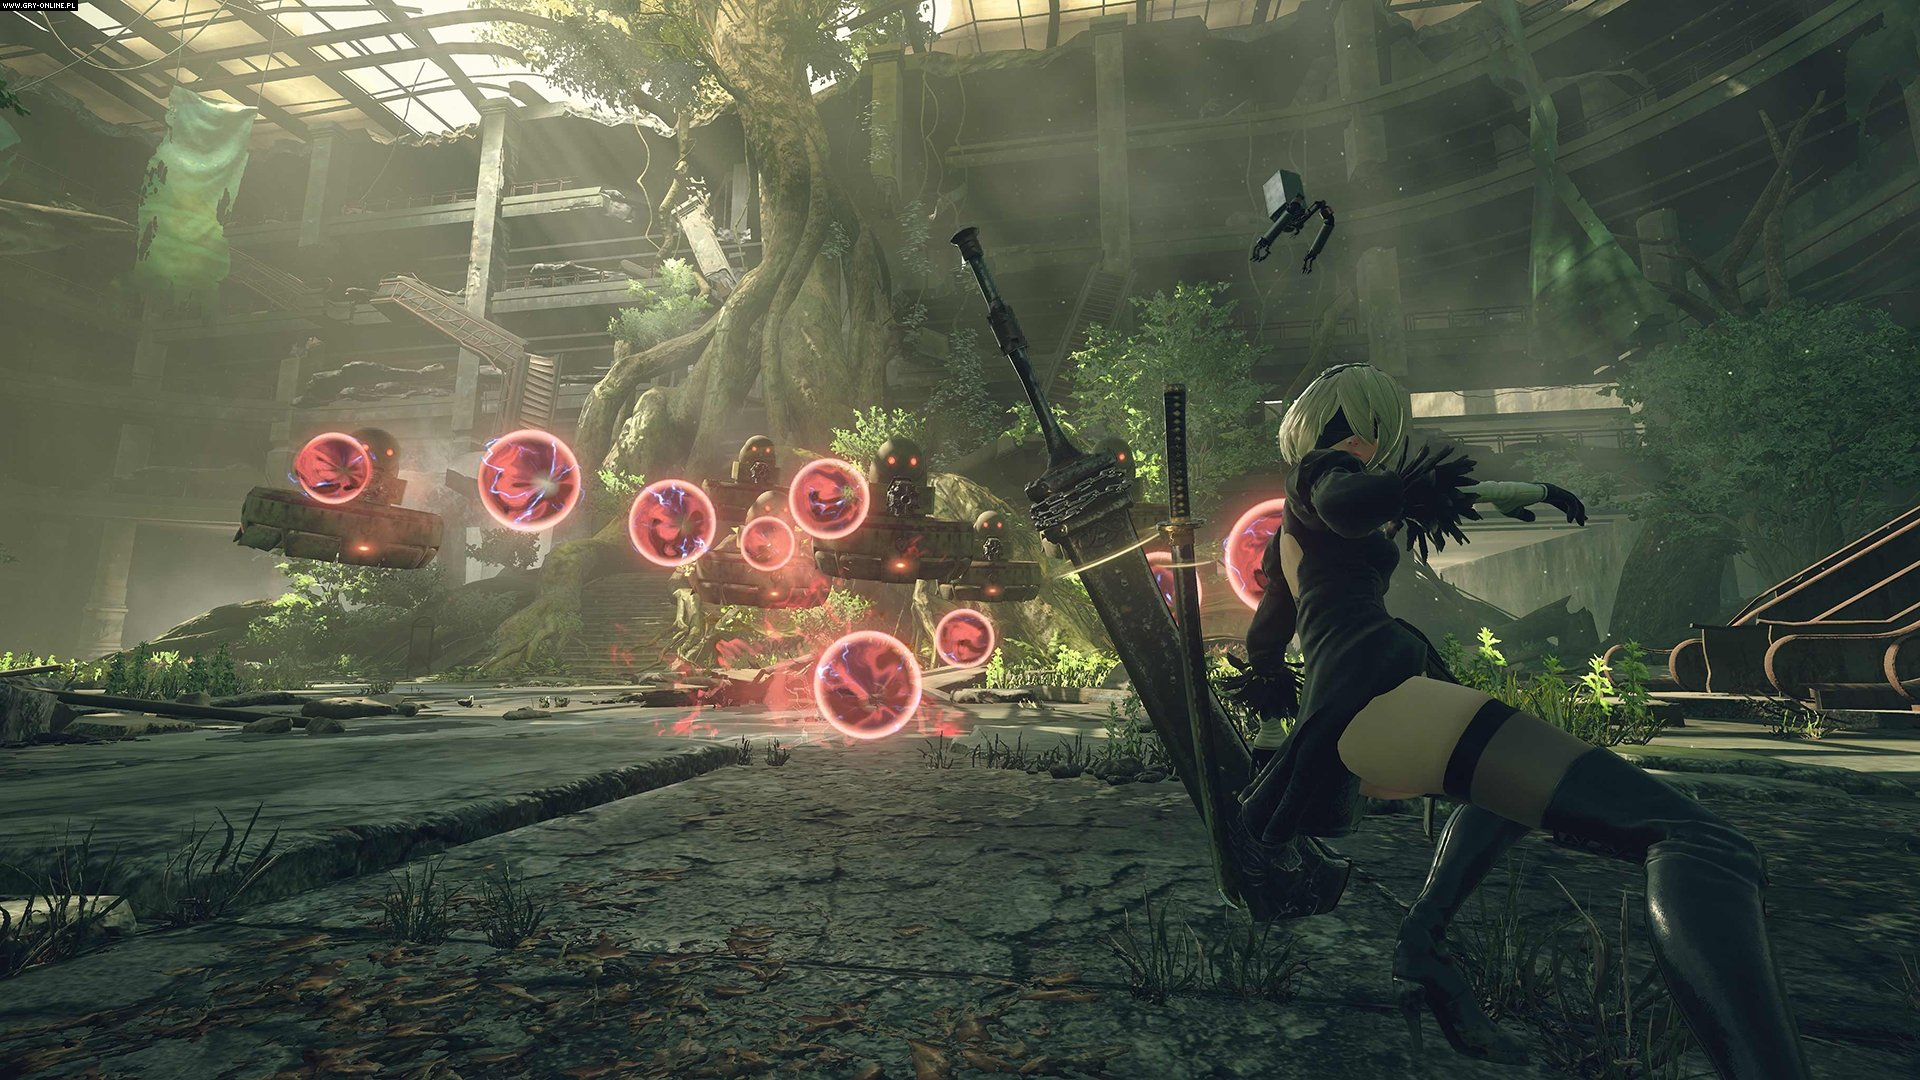 Nier: Automata PC, PS4 Games Image 13/68, PlatinumGames, Square-Enix / Eidos